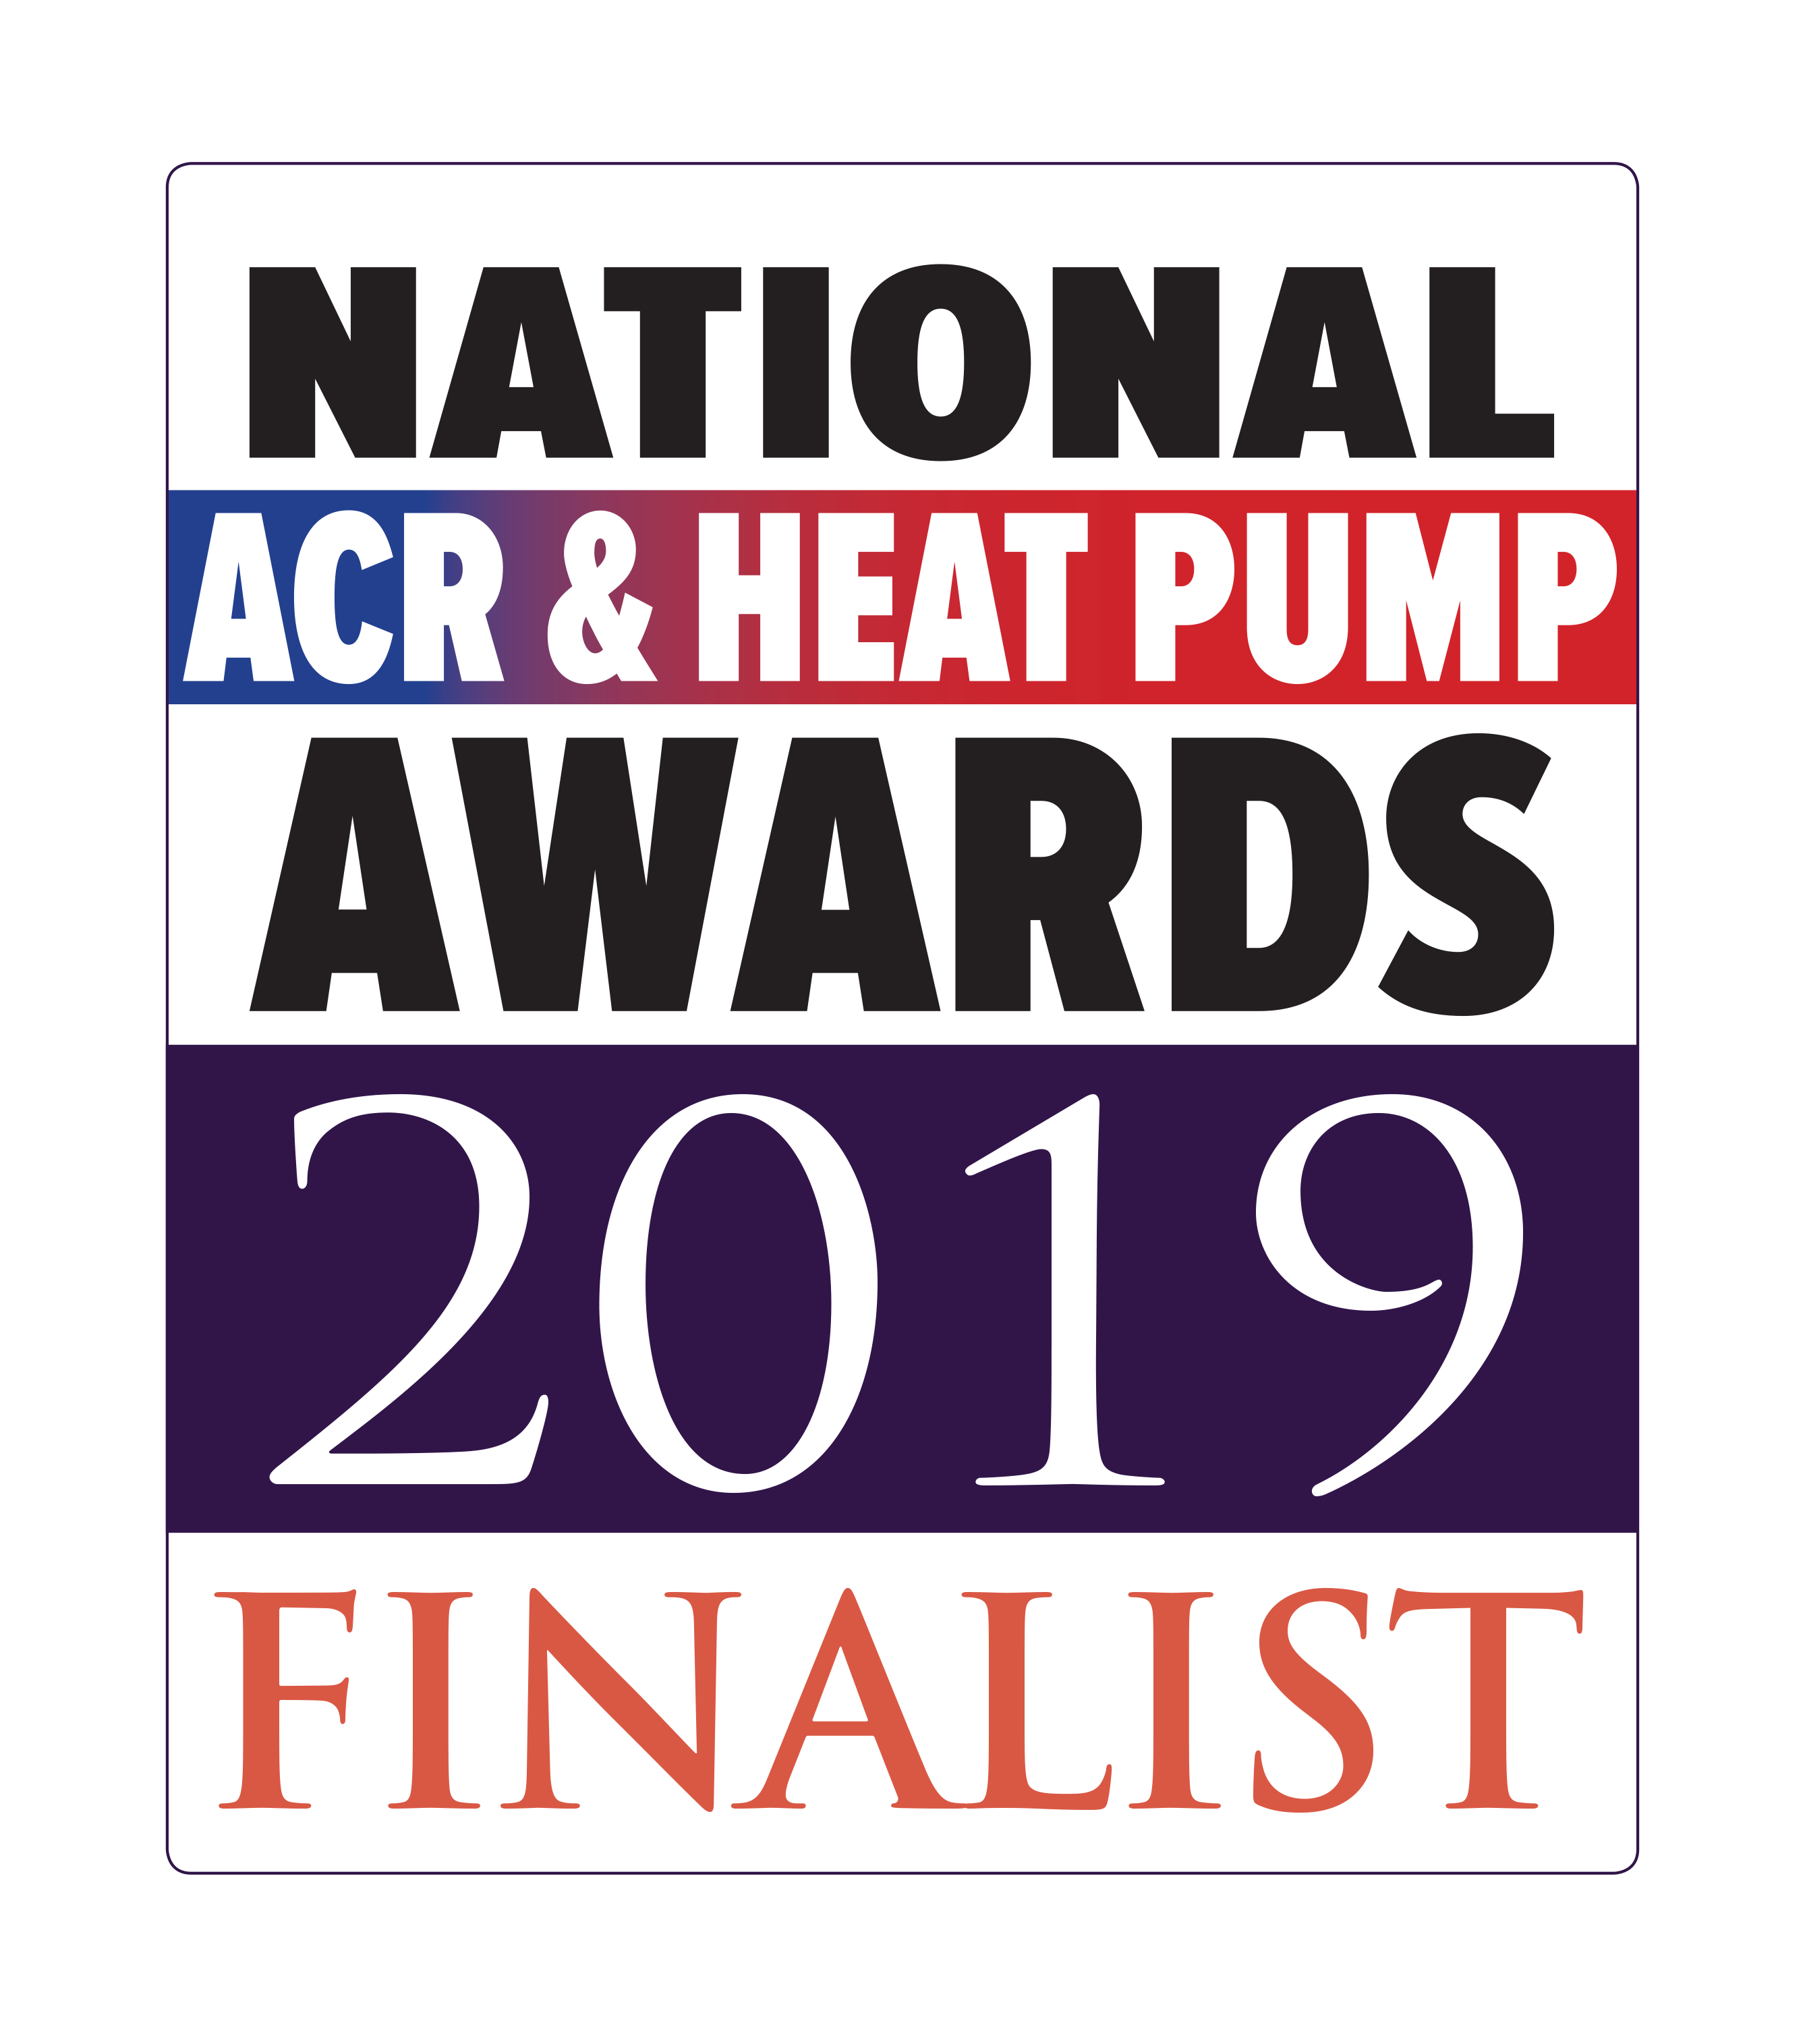 Grant UK's latest heat pump nominated at National ACR & Heat Pump Awards